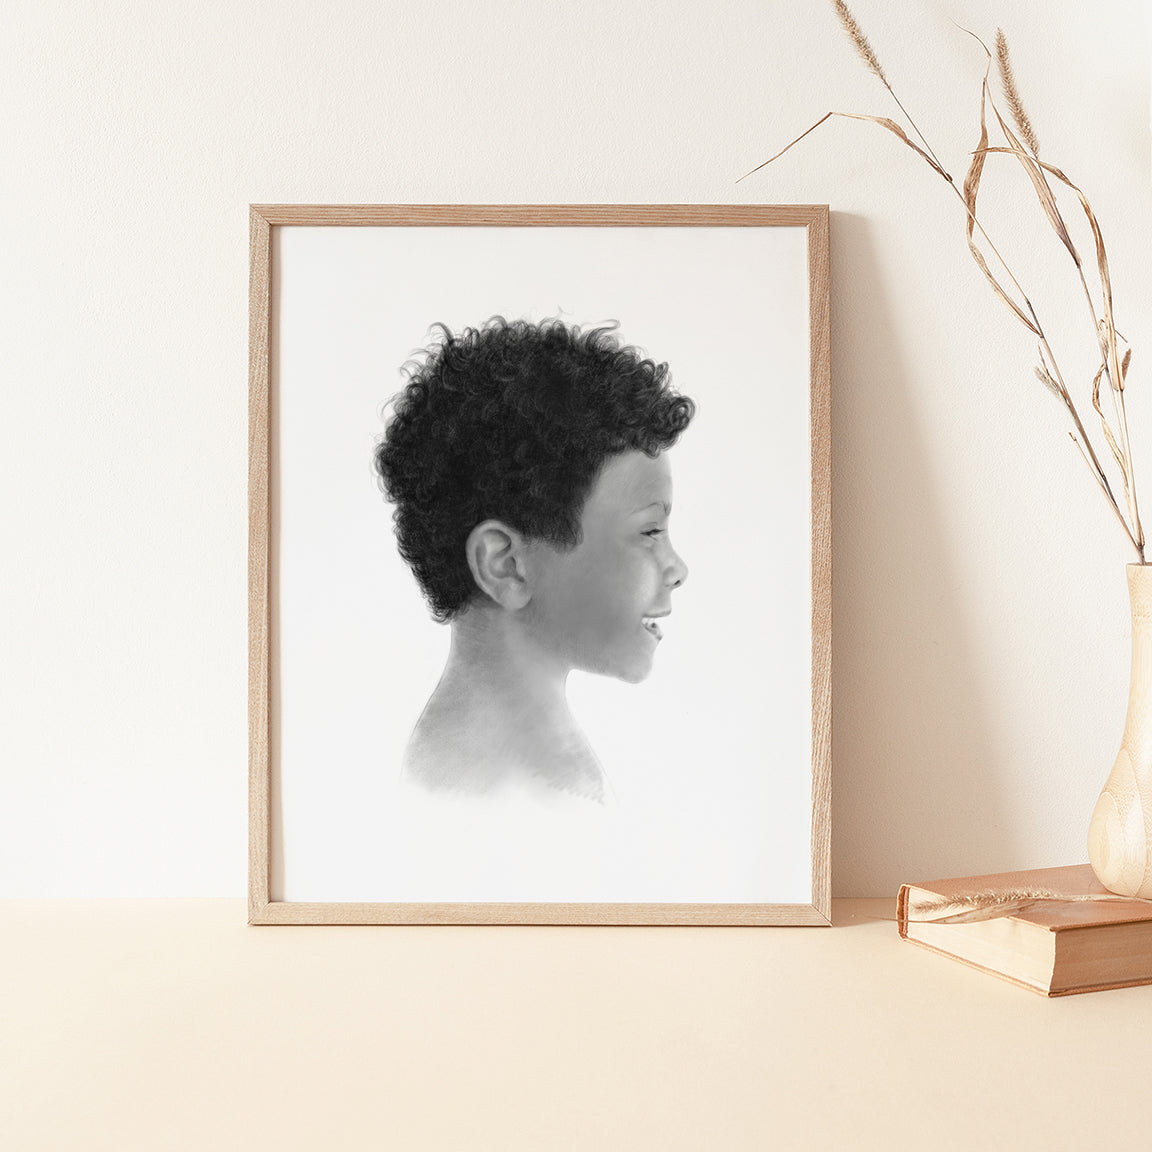 The Pastel Silhouette Portrait - Grayscale